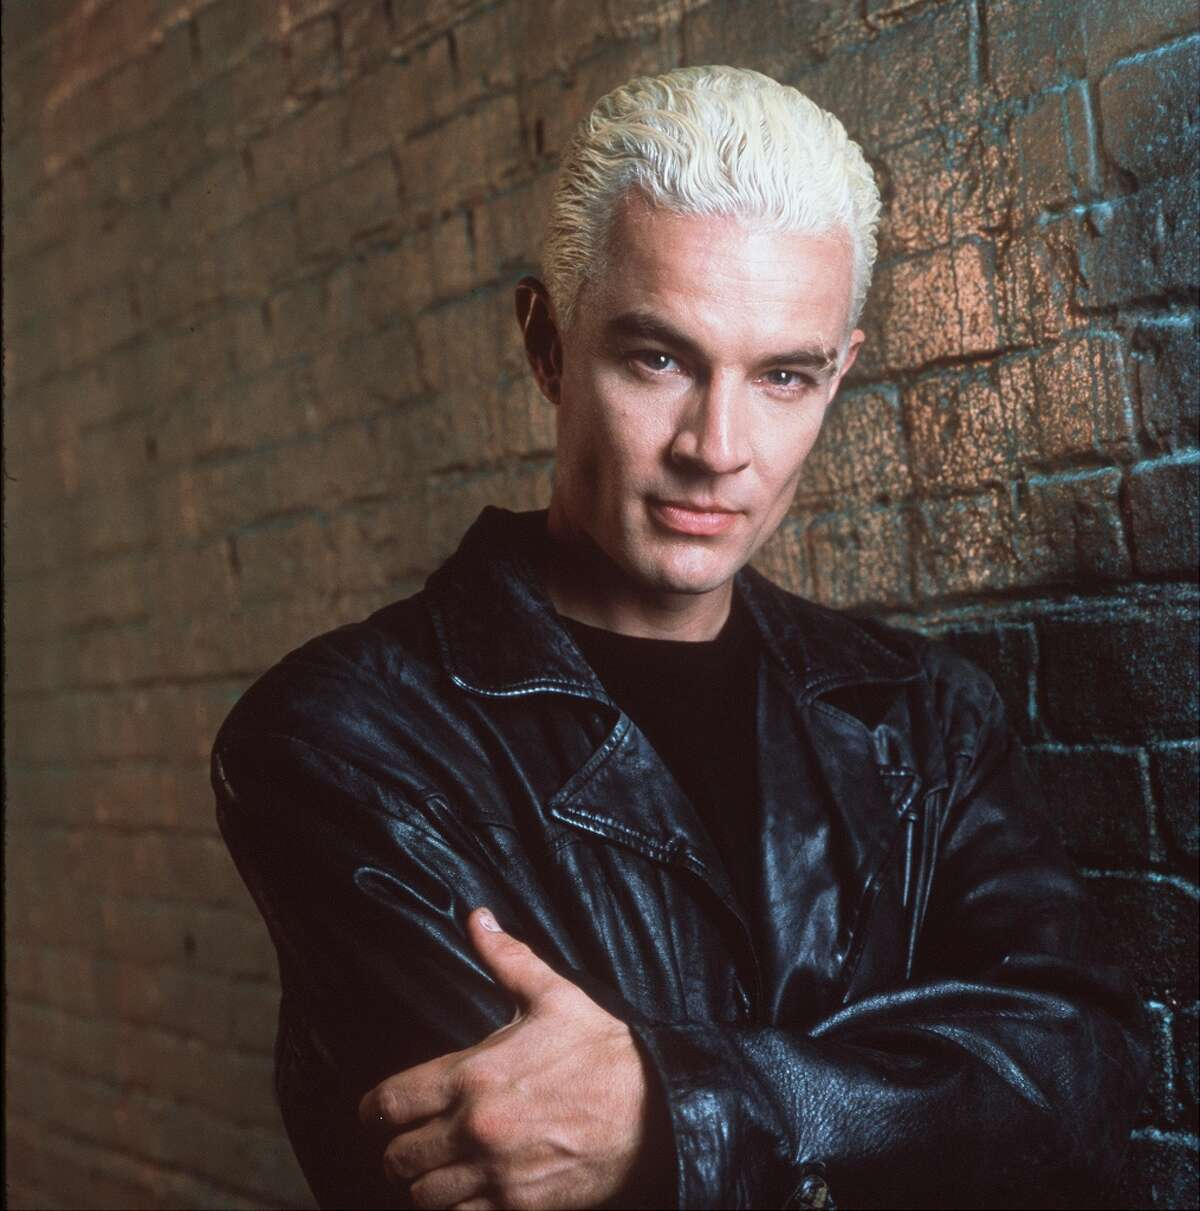 Spike, played by James Marsters. The vampire who killed two Slayers finds himself in love with Buffy. His great quote at the end of the series: 'Now, you listen to me. I've been alive a bit longer than you. And dead a lot longer than that. I've seen things you couldn't imagine - done things I'd prefer you didn't. I don't exactly have a reputation for being a thinker. I follow my blood. Which doesn't exactly rush in the direction of my brain. I've made a lot of mistakes. A lot of wrong bloody calls. A hundred plus years and there's only one thing I've ever been sure of. You.'